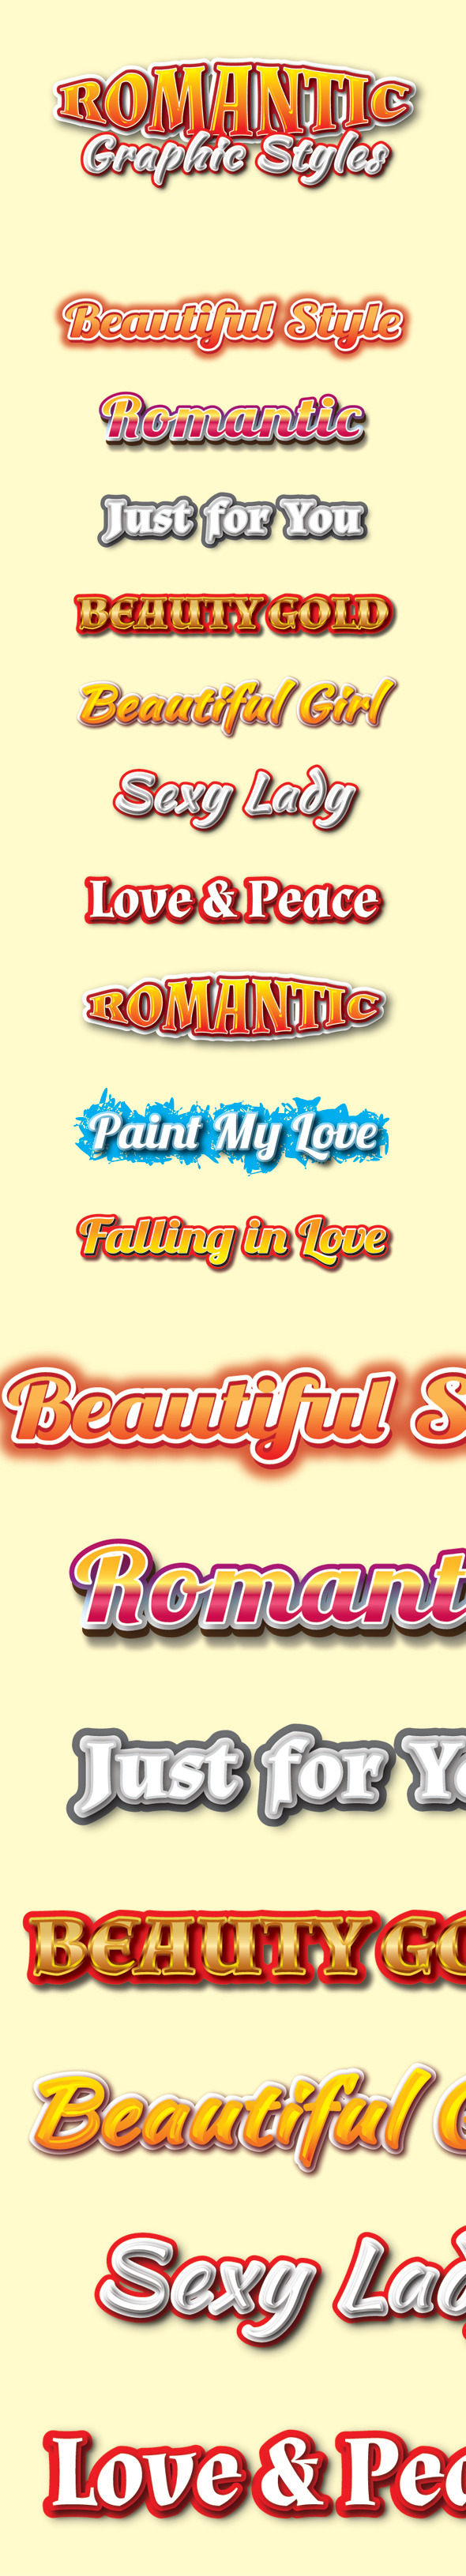 Romantic Graphic Styles for Ai - Styles Illustrator